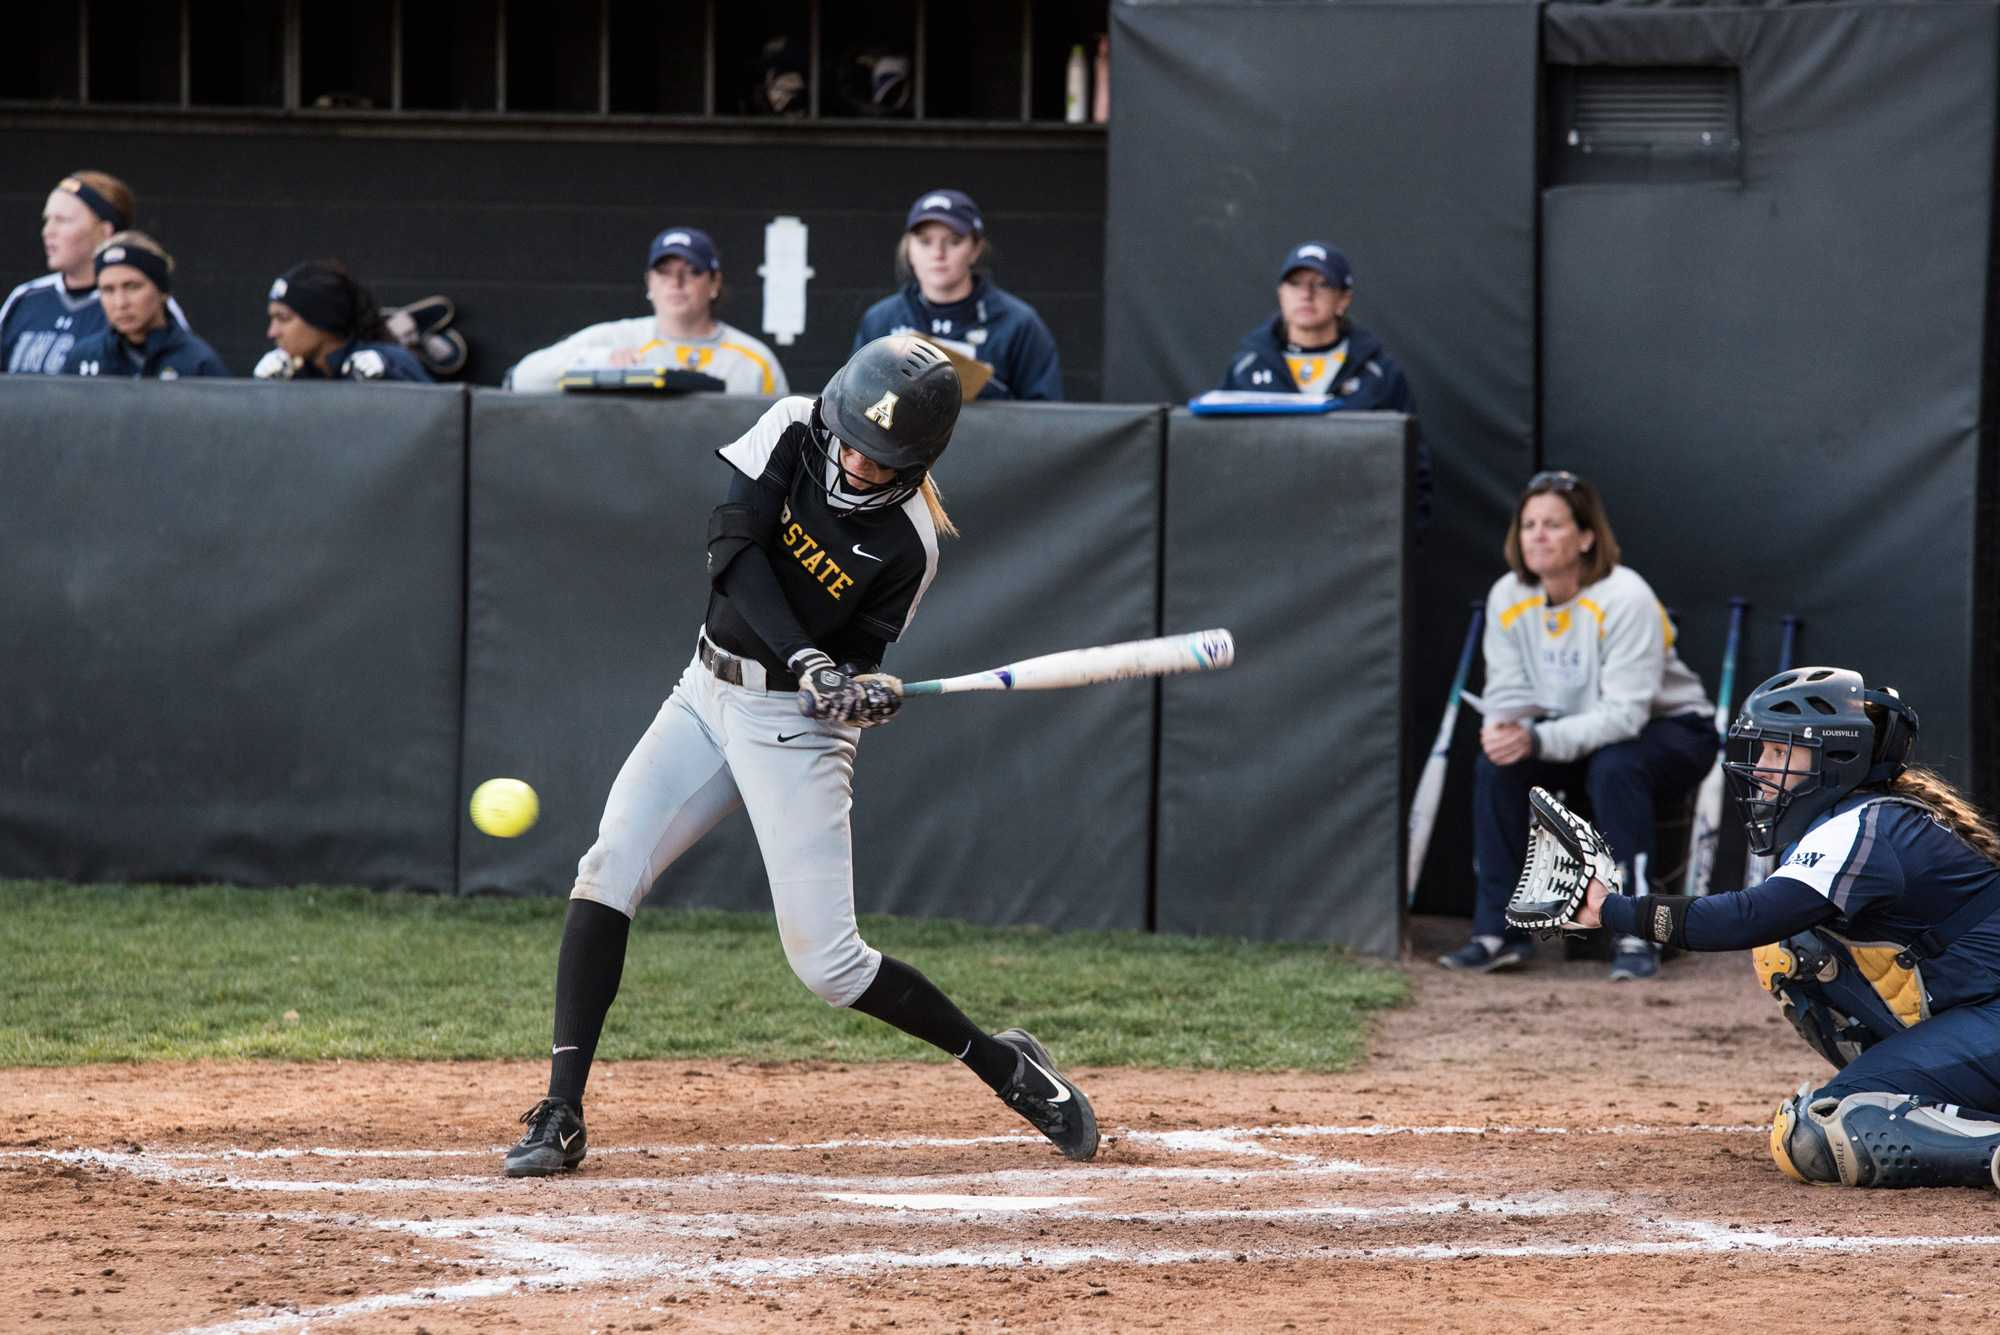 Sophomore Natalie Orcutt swings at the ball during the game against UNCG.